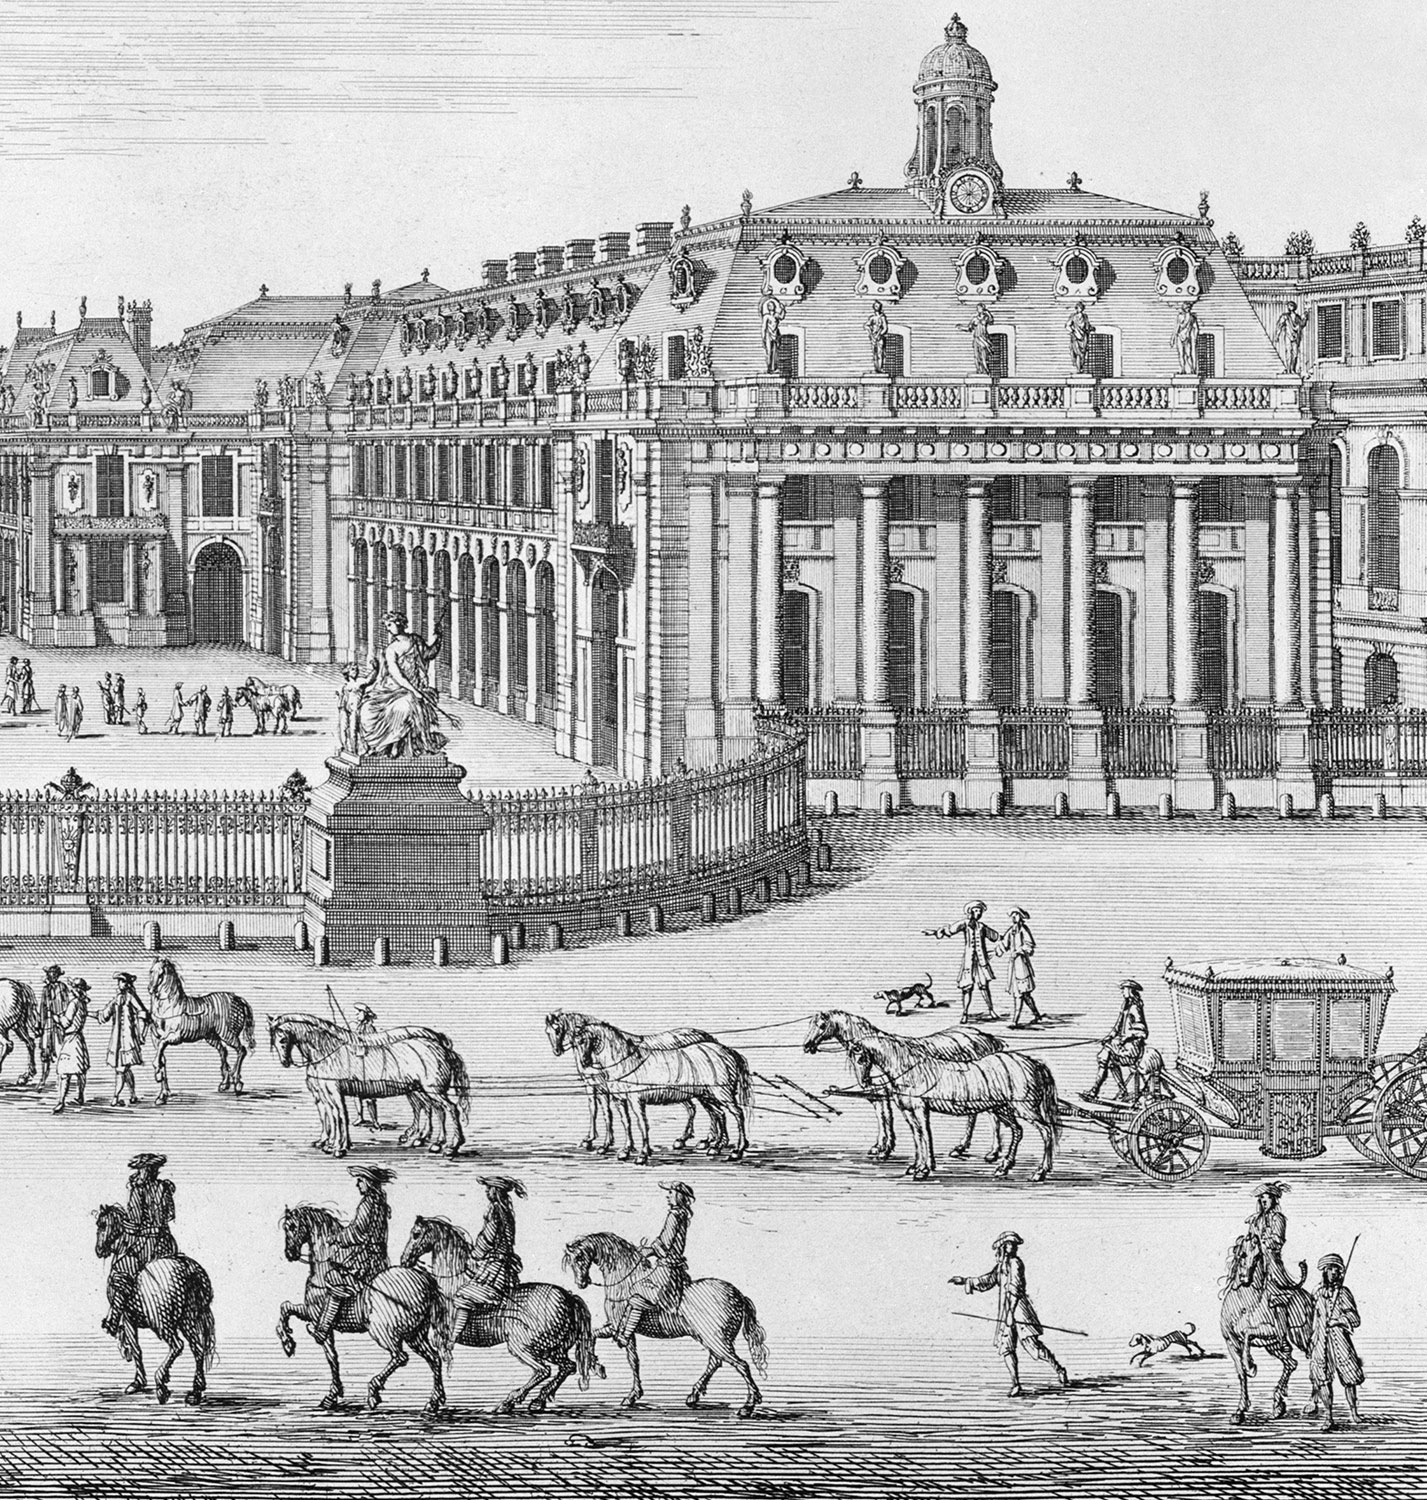 Château de Versailles seen from the forecourt, from Chalcographie du Louvre, Vol. 22